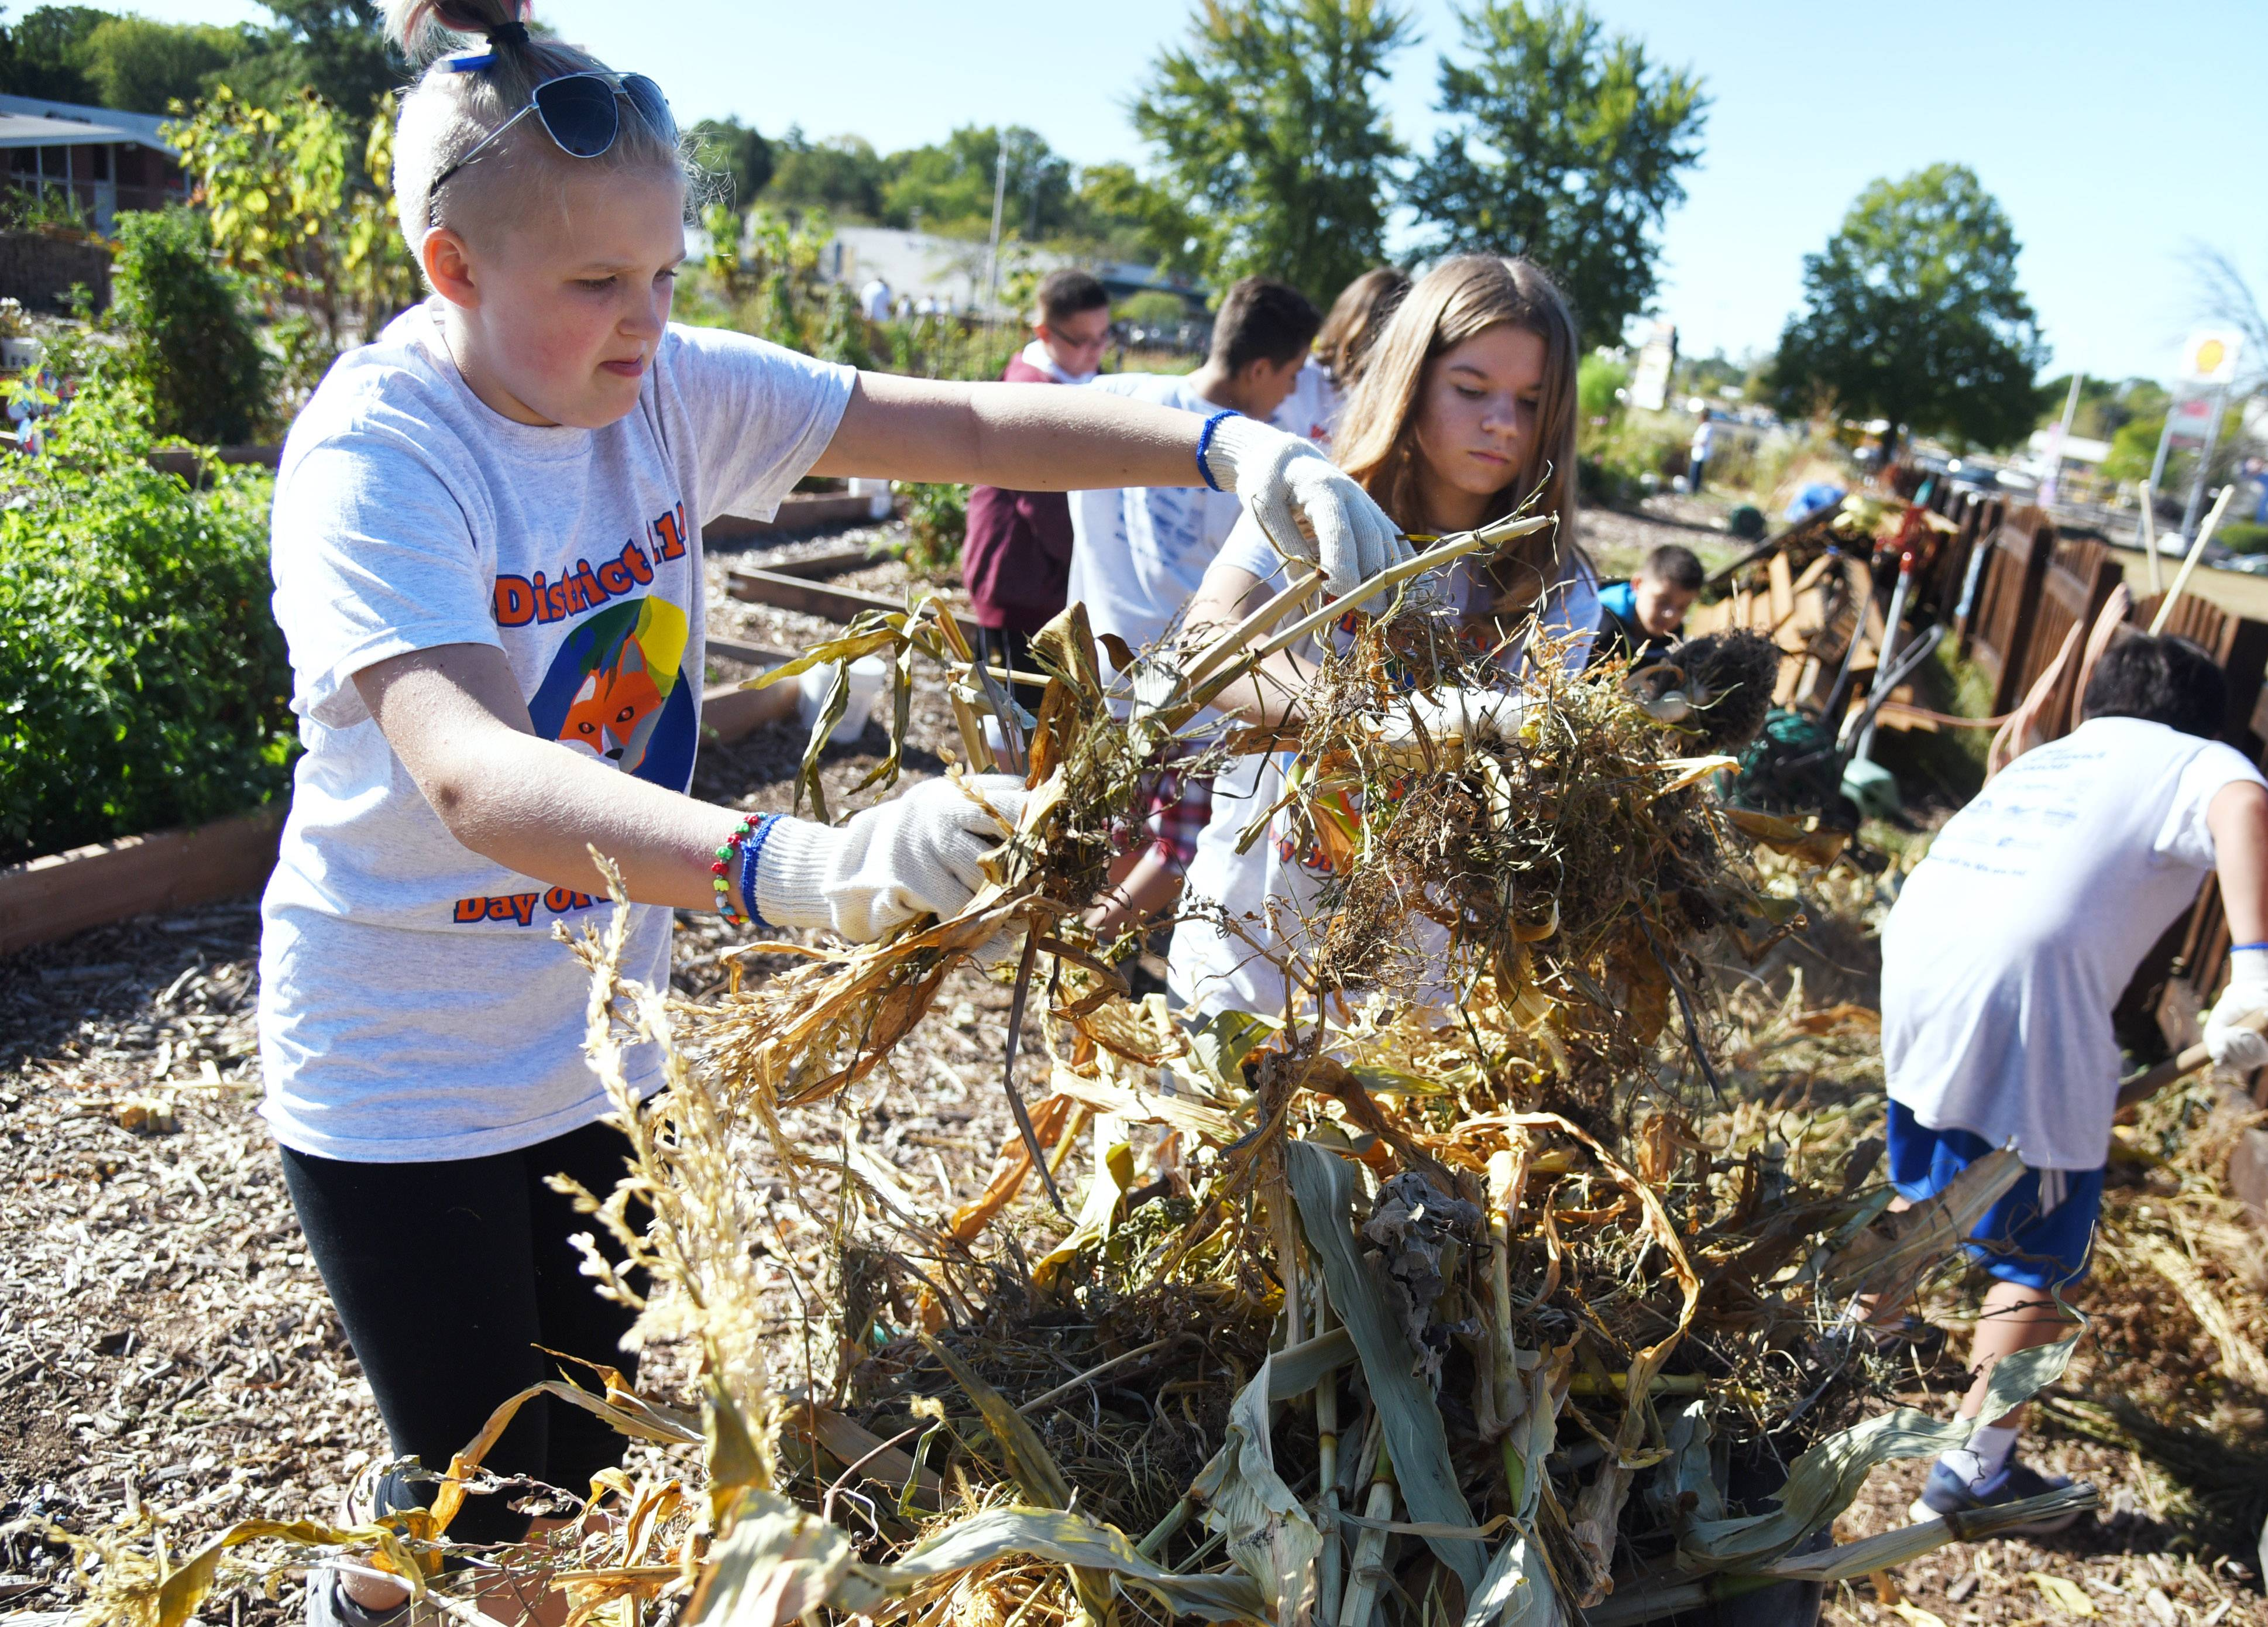 Stanton Middle School students Maddie Watts and Marisa Rosario help clean up debris Friday at the Fox Lake Community Garden. Students from Stanton and Lotus schools were participating in the third annual District 114 Day of Service event.